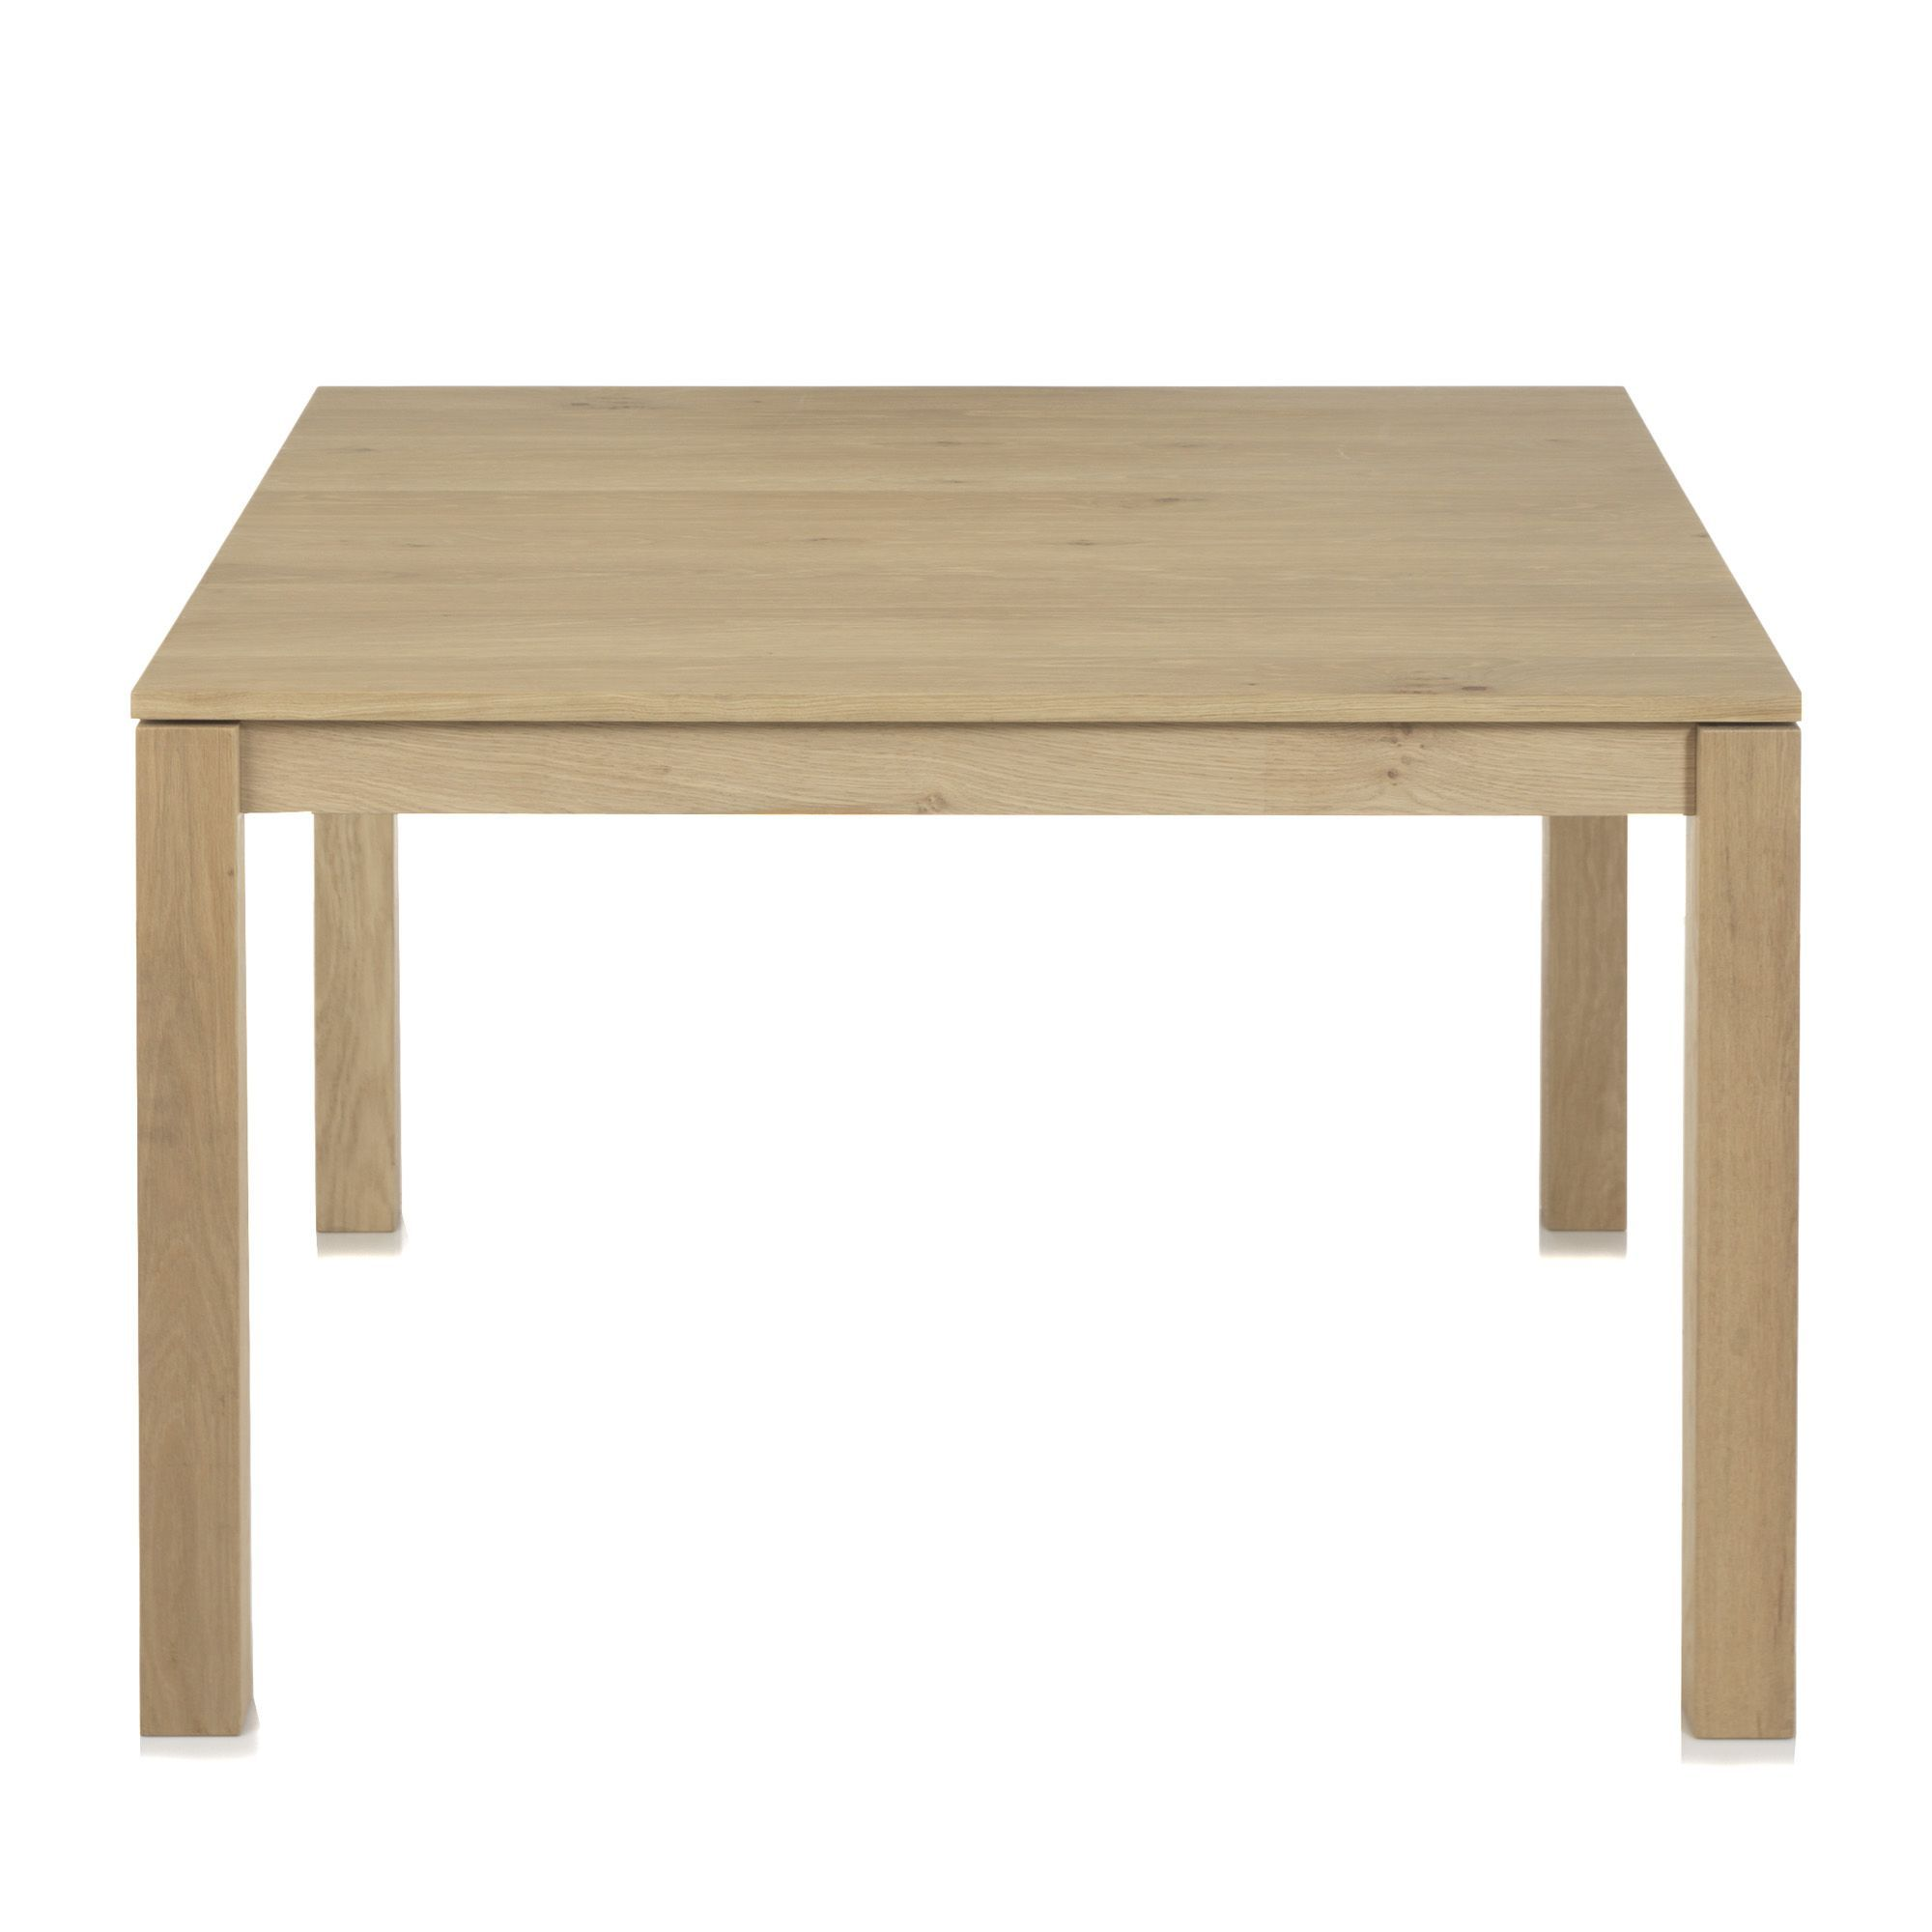 0d03f566a4a60413d6ac54e3fa230471 Meilleur De De Chaise Table A Manger